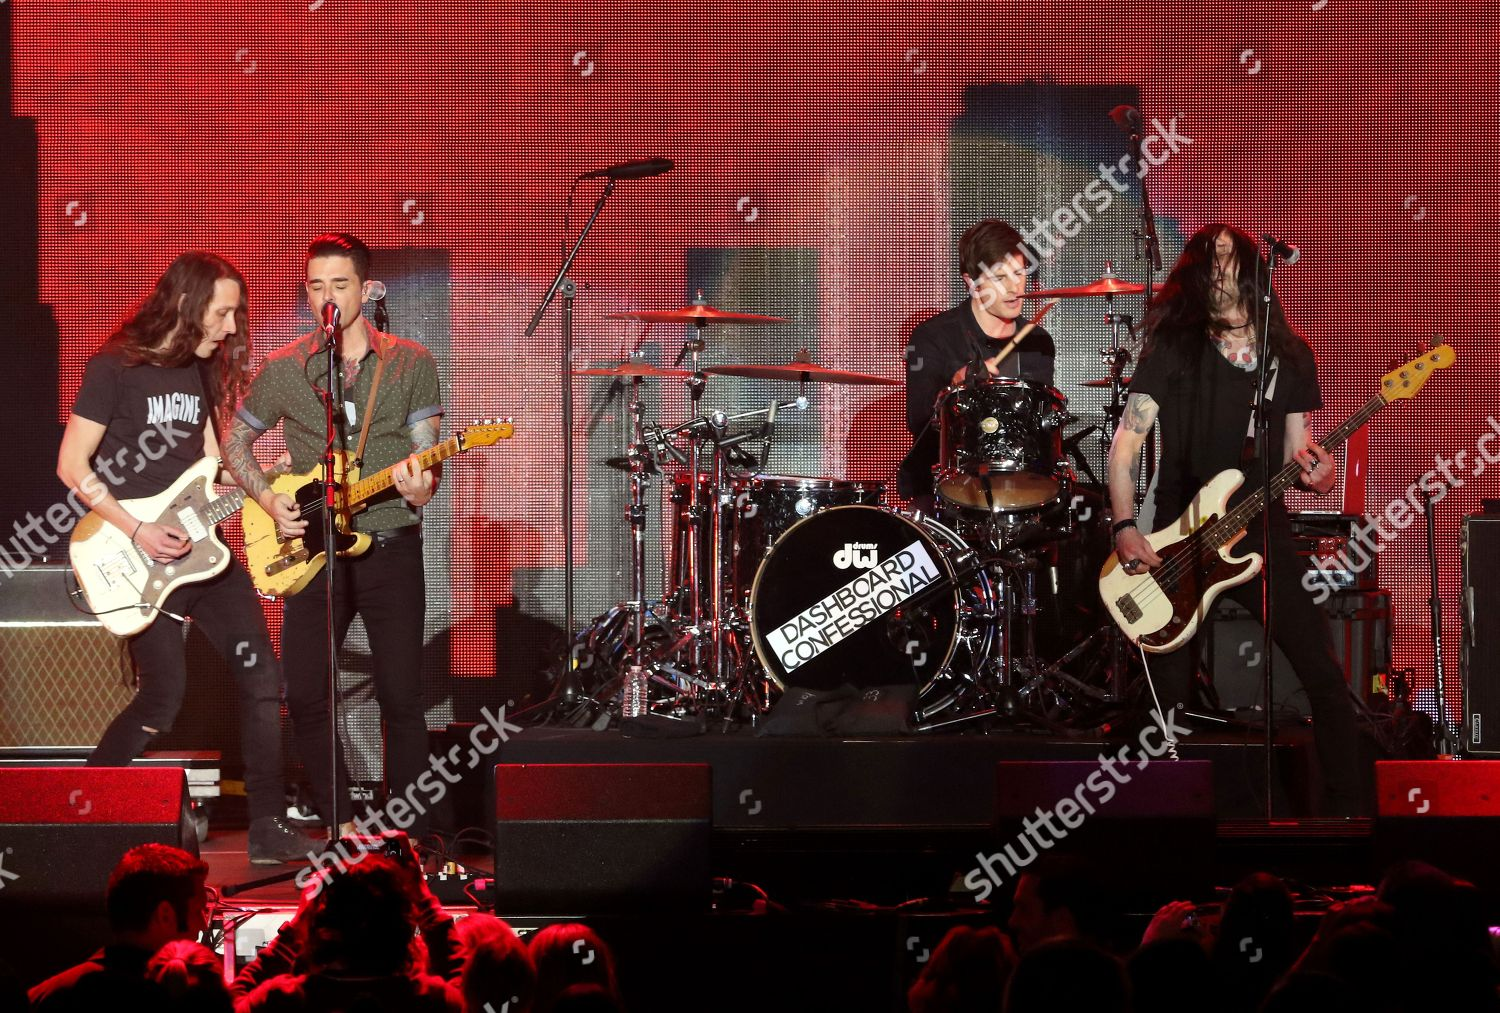 Dashboard Confessional performs on stage iHeartRadio ALTer